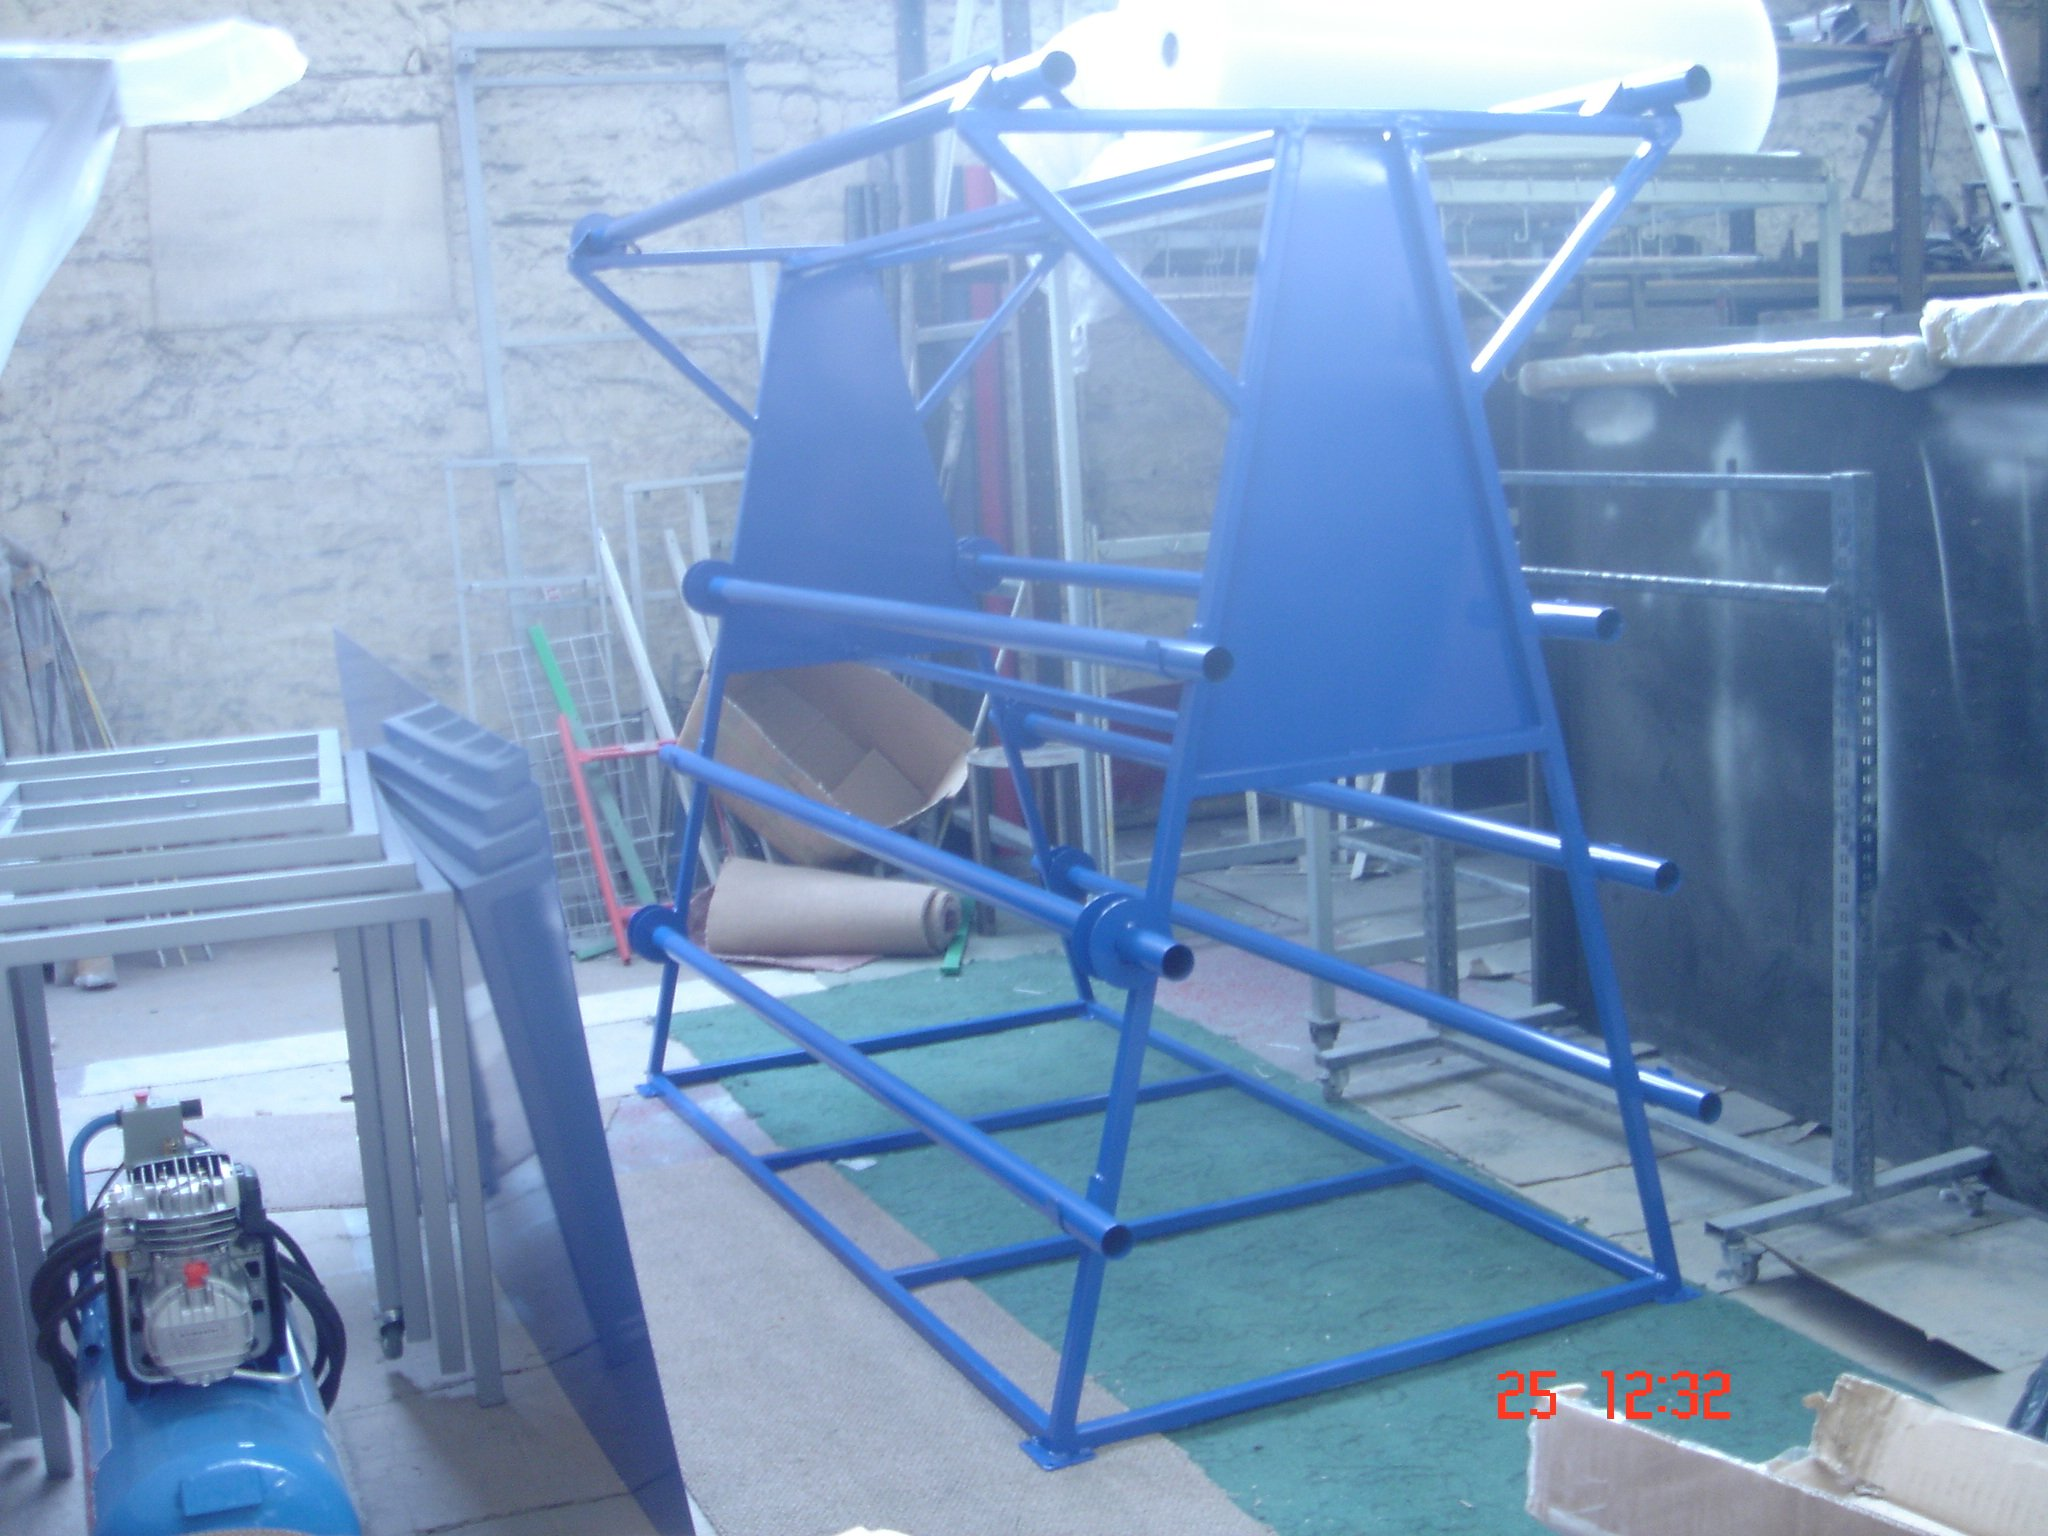 Exhibition Stand Keighley : Bespoke metal exhibition display equipment keighley